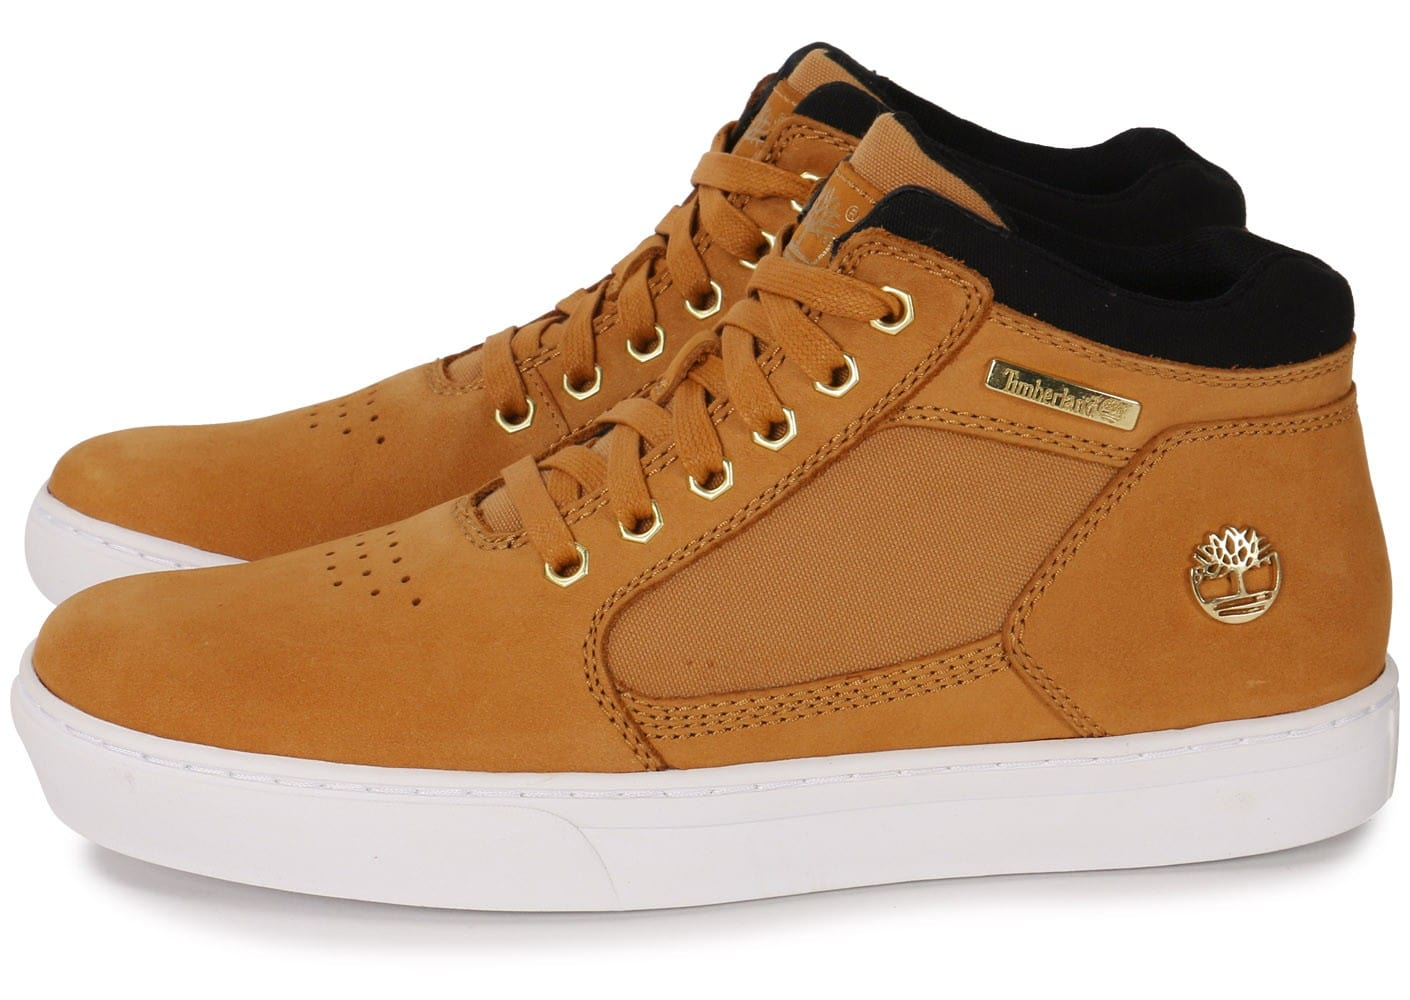 2 Baskets Cupsole 0 Homme Chausport Timberland Beige Chaussures IY76gybfv